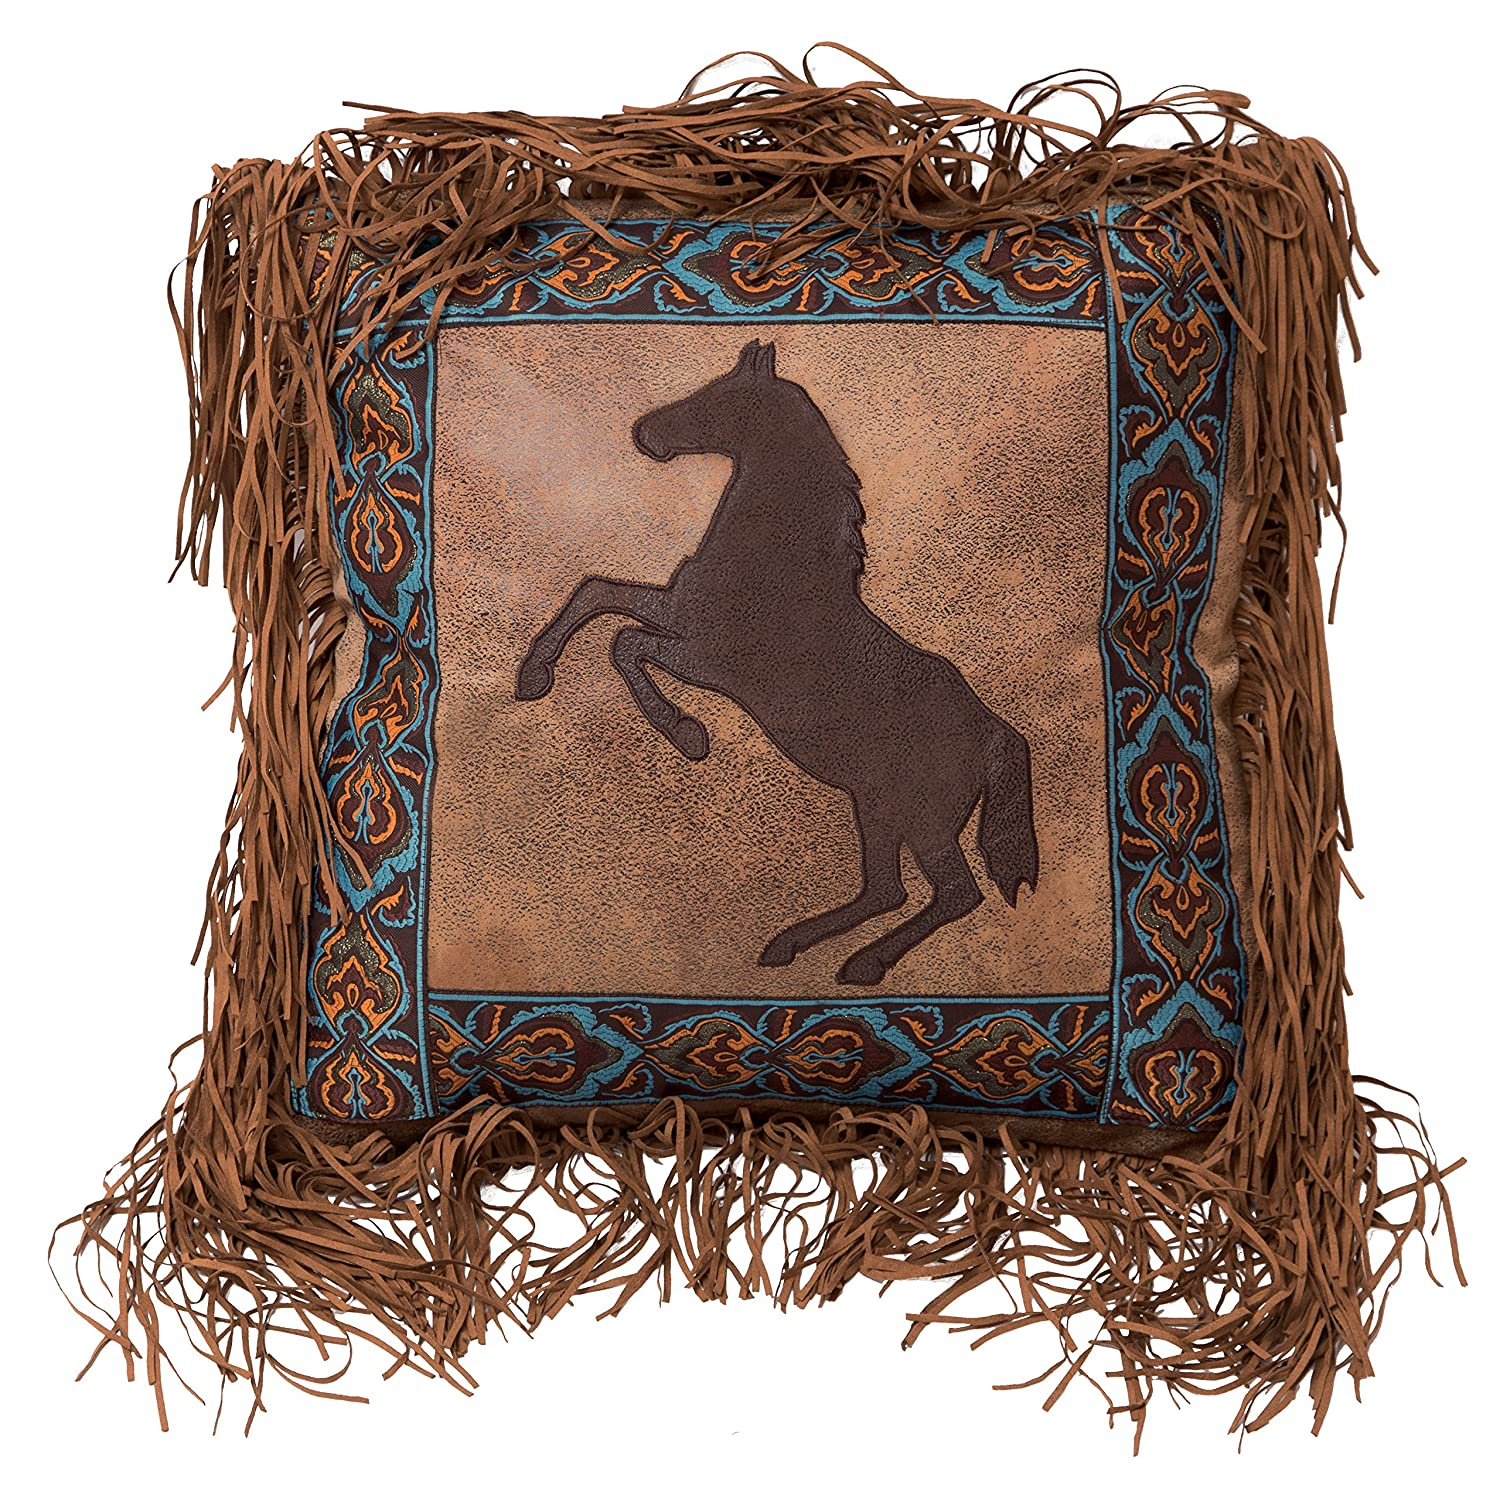 Carstens Rearing Horse Fringe, 18 by 18 Inches Decorative Pillow, Multi